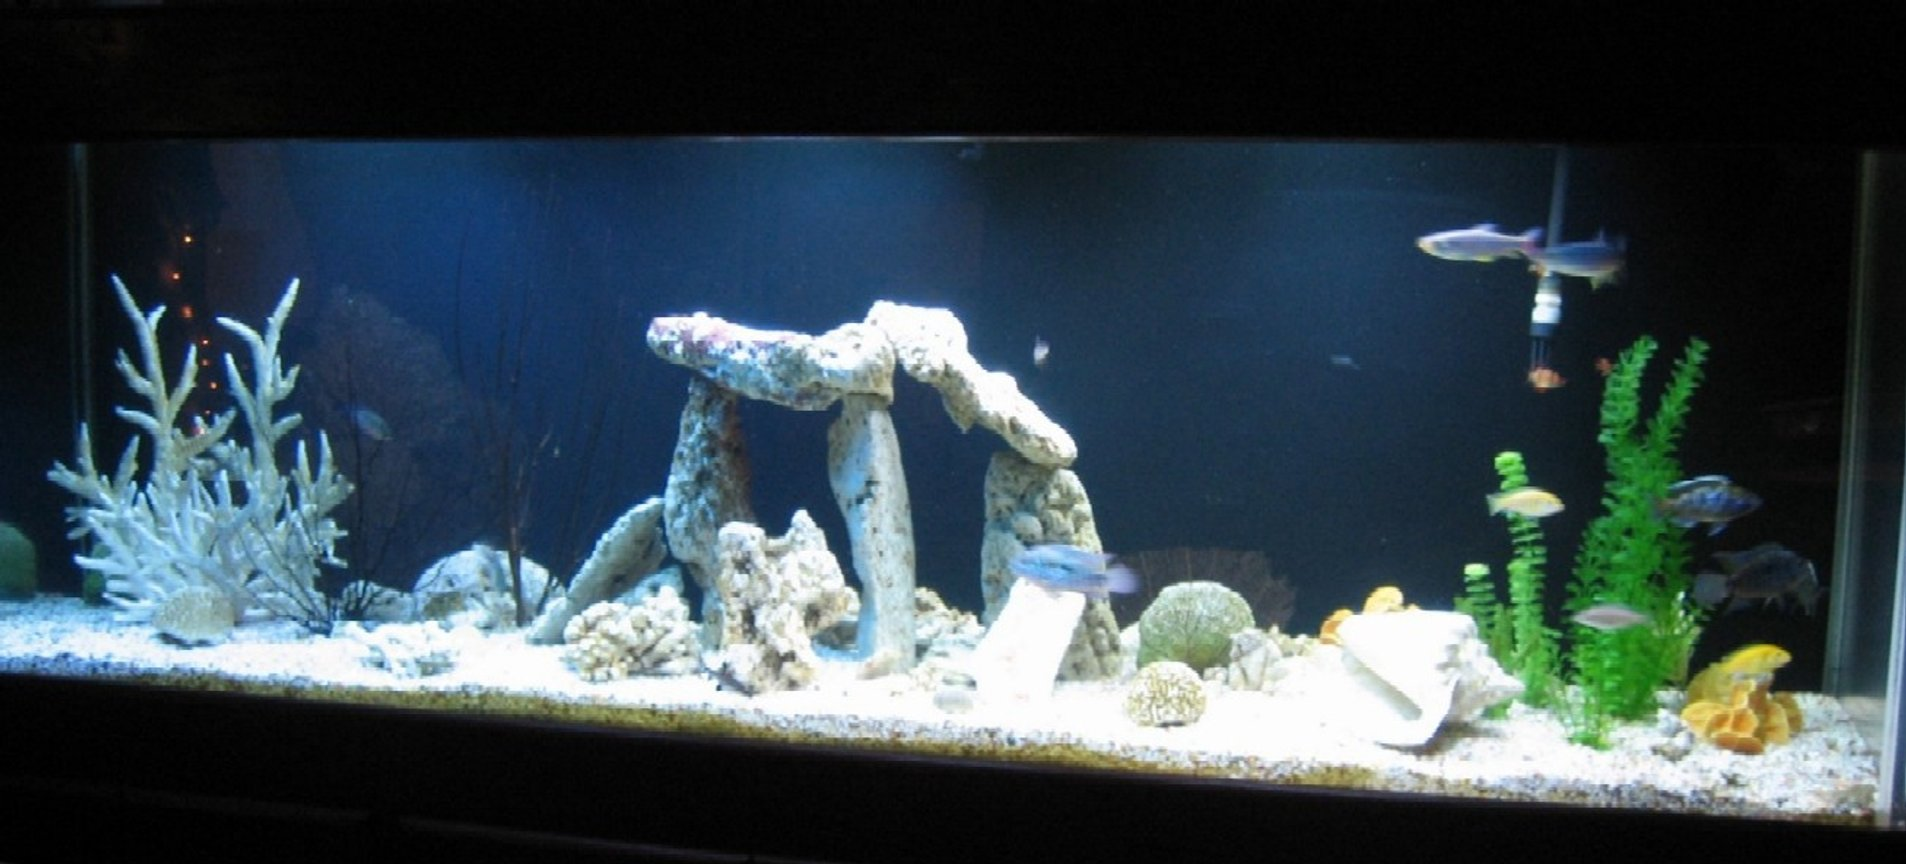 300 gallons freshwater fish tank (mostly fish and non-living decorations) - 300 gallon - 6 months in